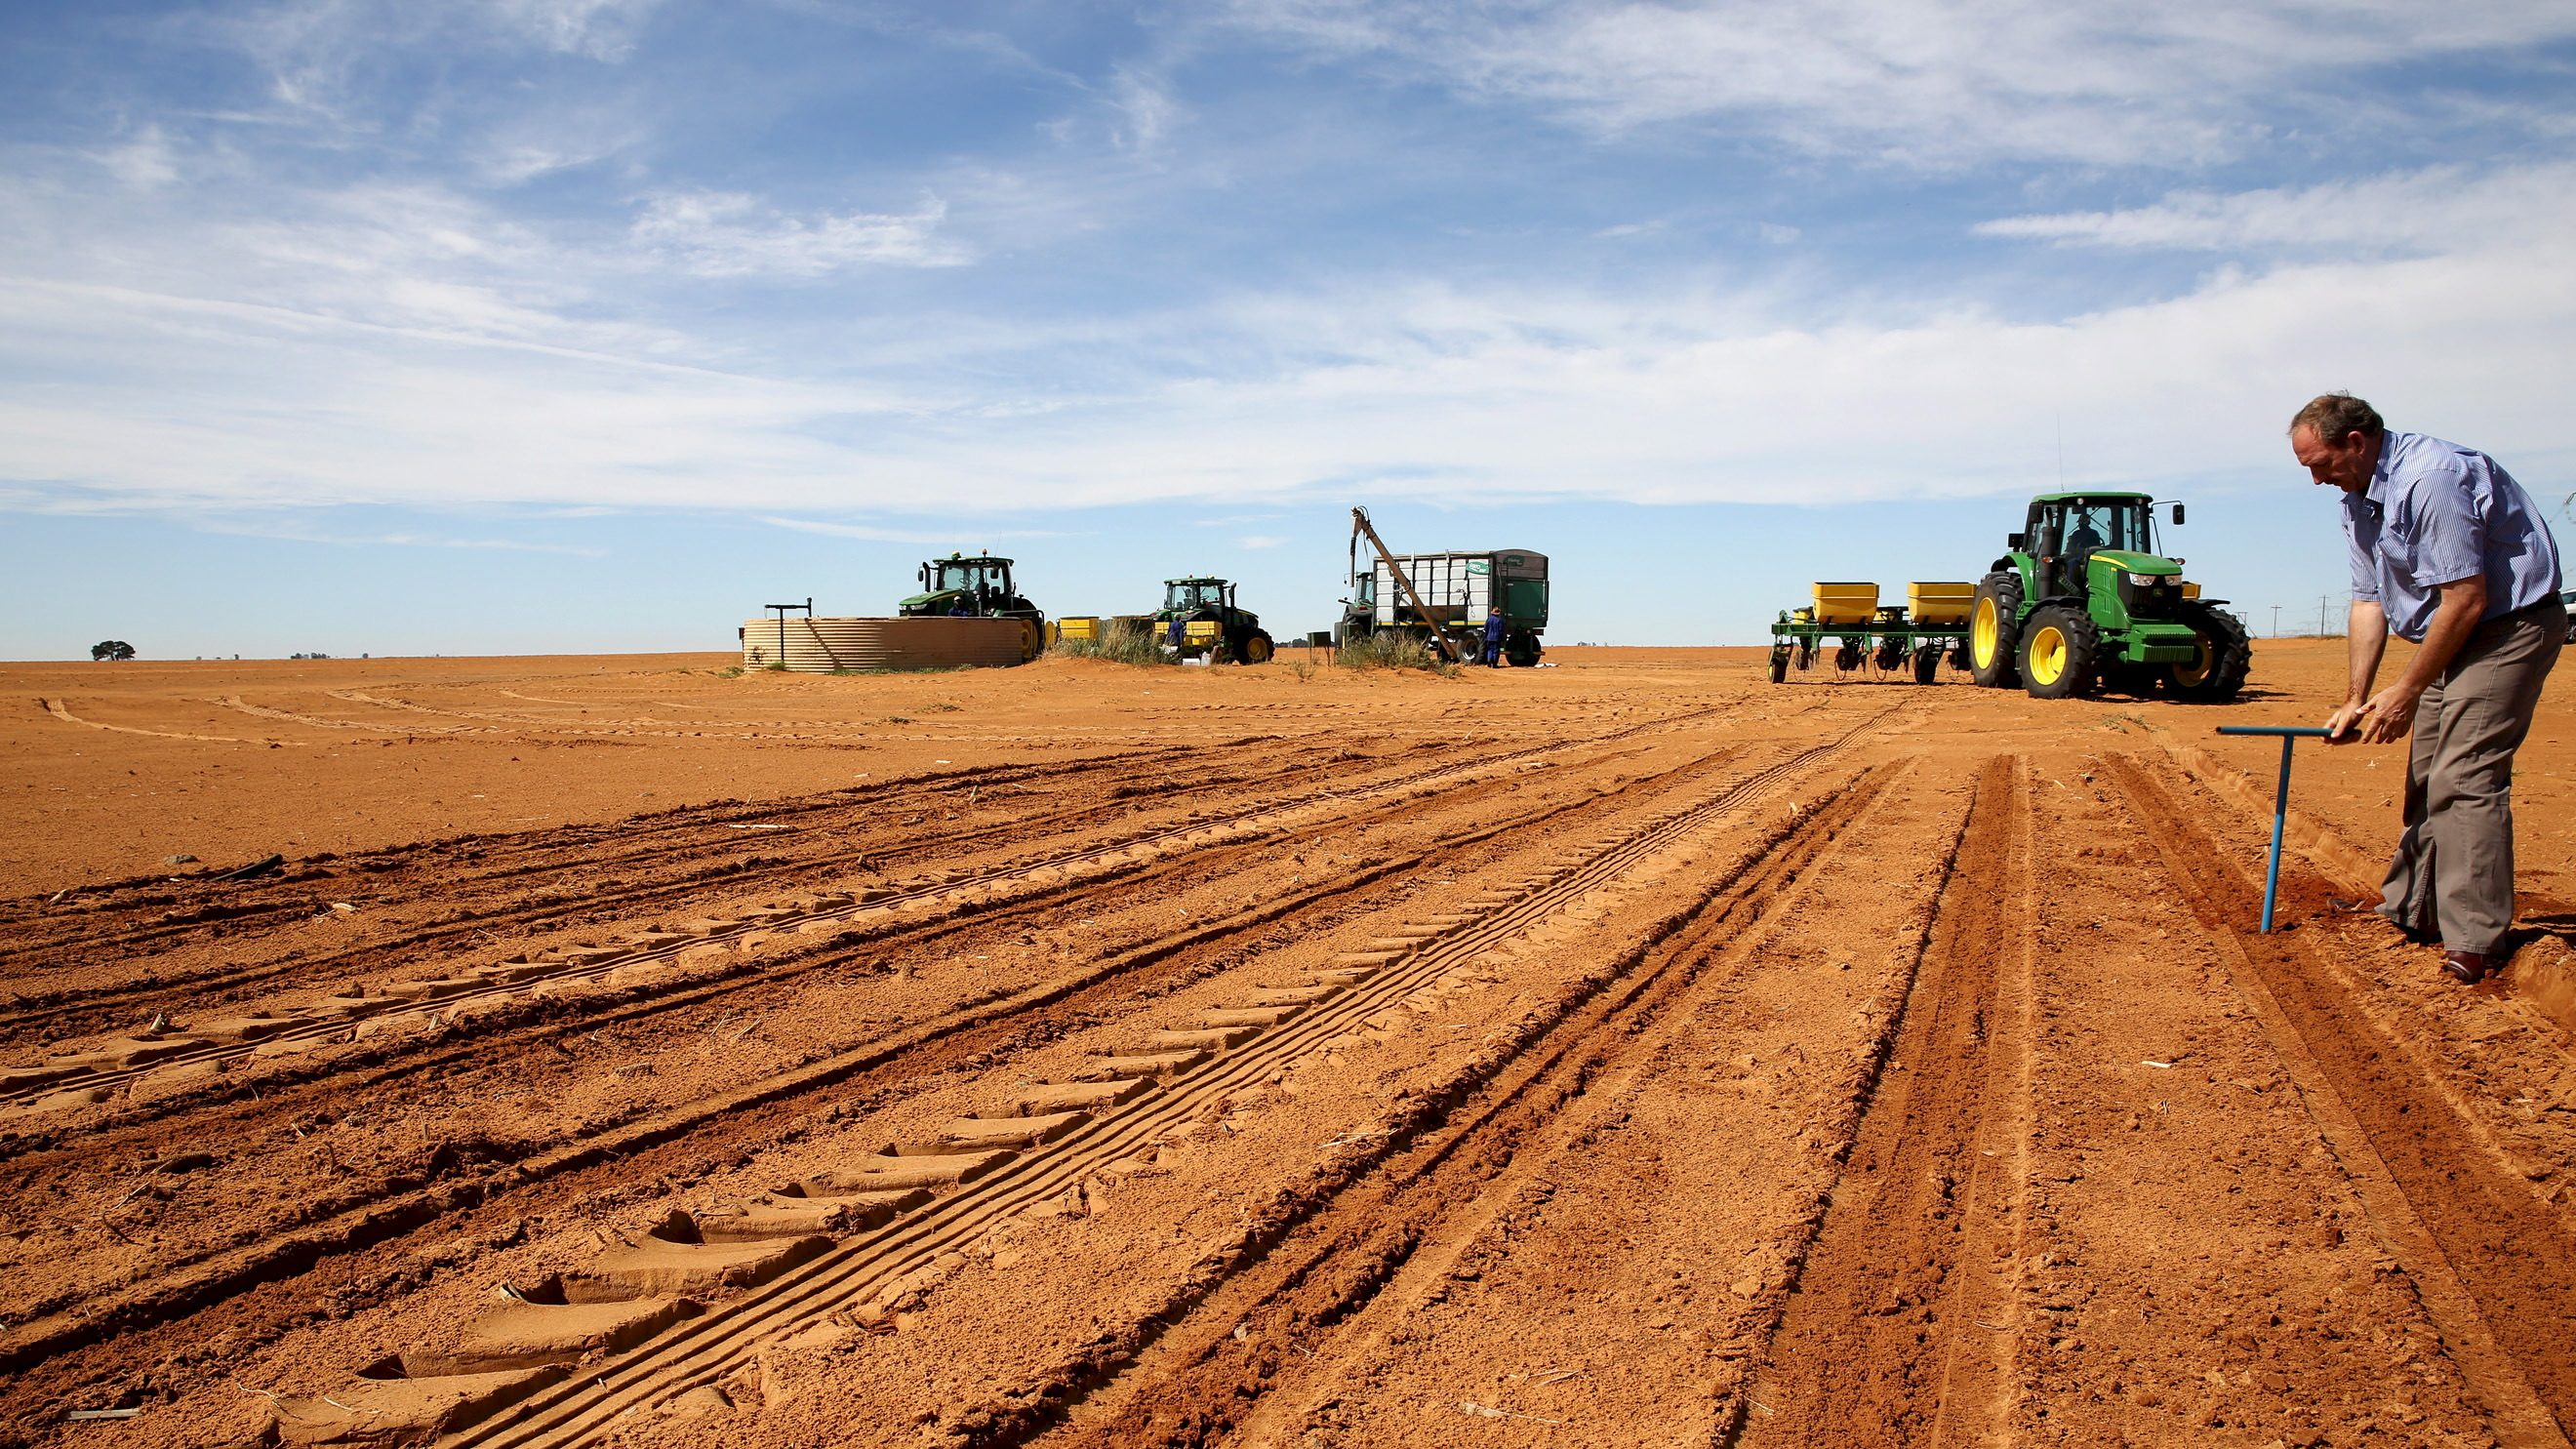 A farmer inspects the soil ahead of planting at a maize field in Wesselsbron, a small maize farming town in the Free State province of South Africa